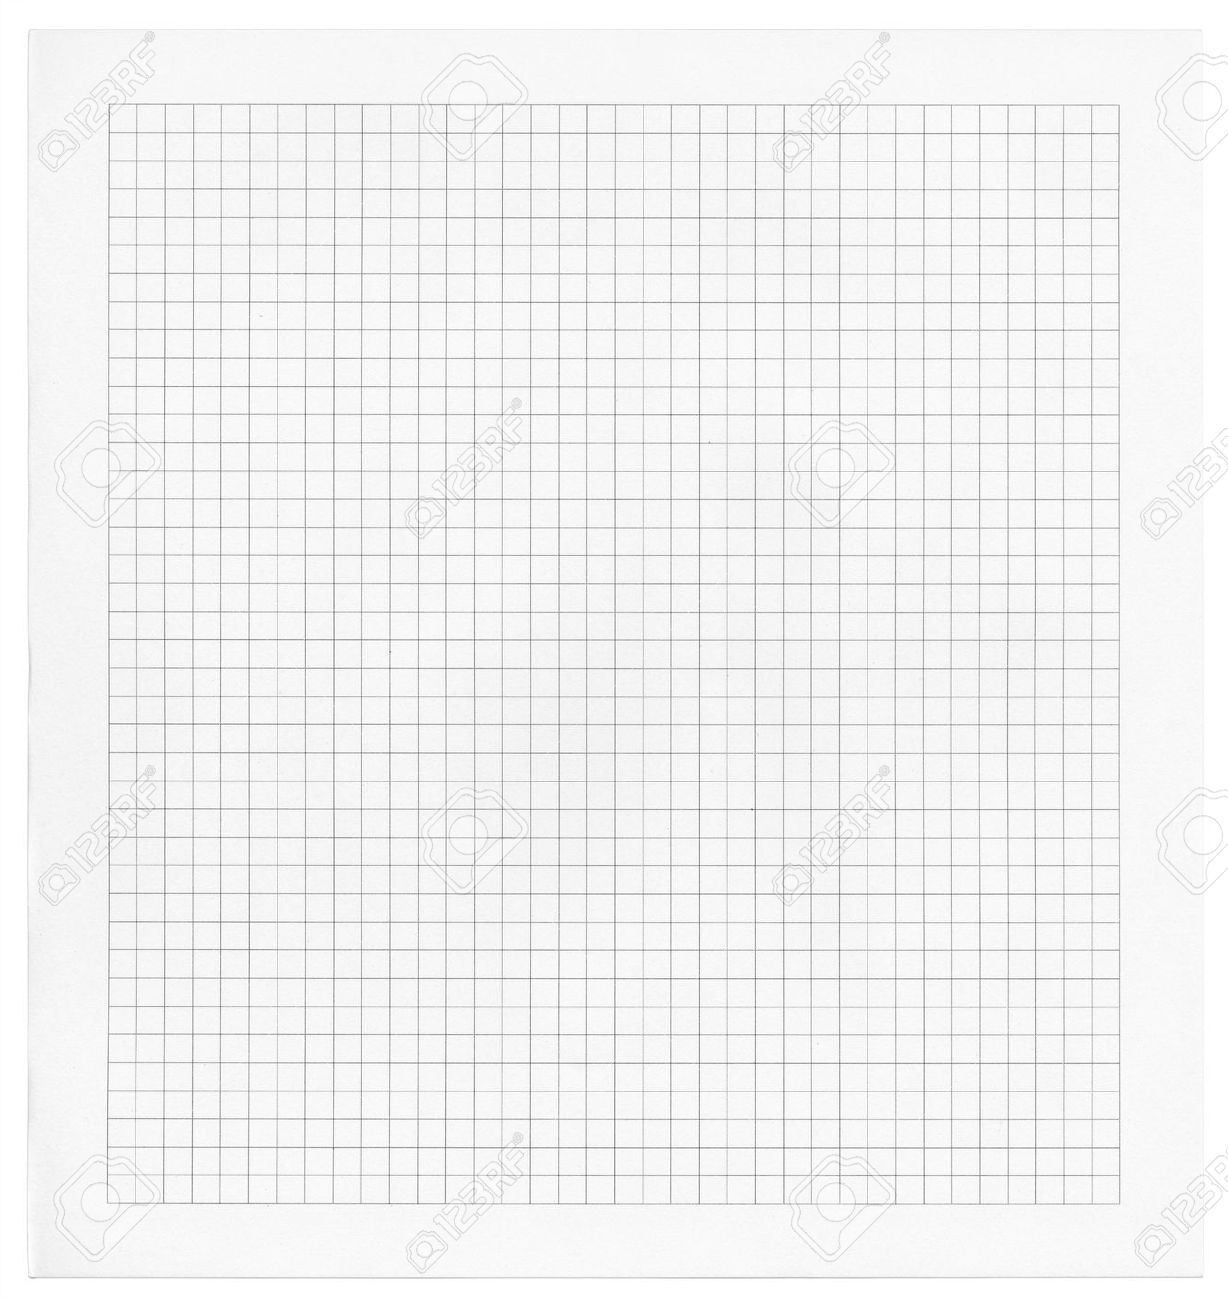 worksheet Math Paper detailed blank math paper pattern stock photo picture and royalty 8256987